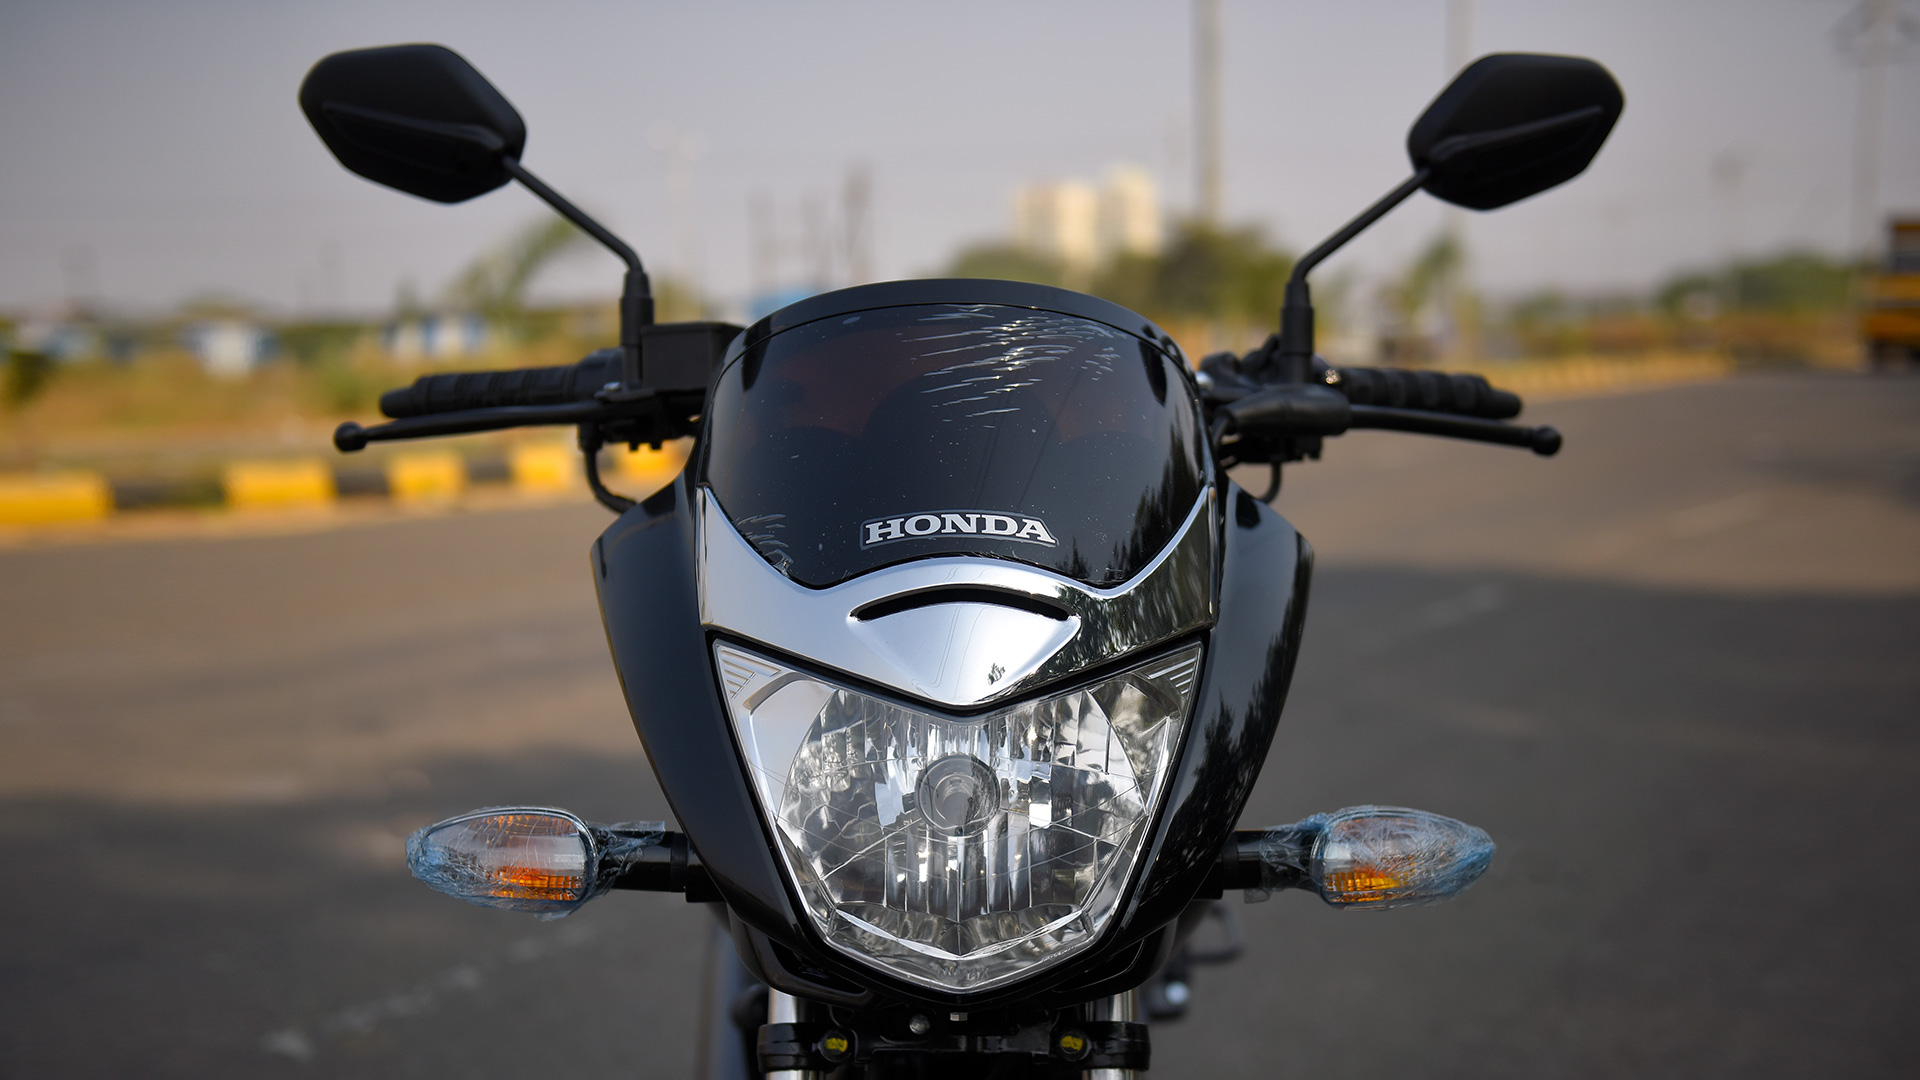 Honda Cb Unicorn 150 2016 Price Mileage Reviews